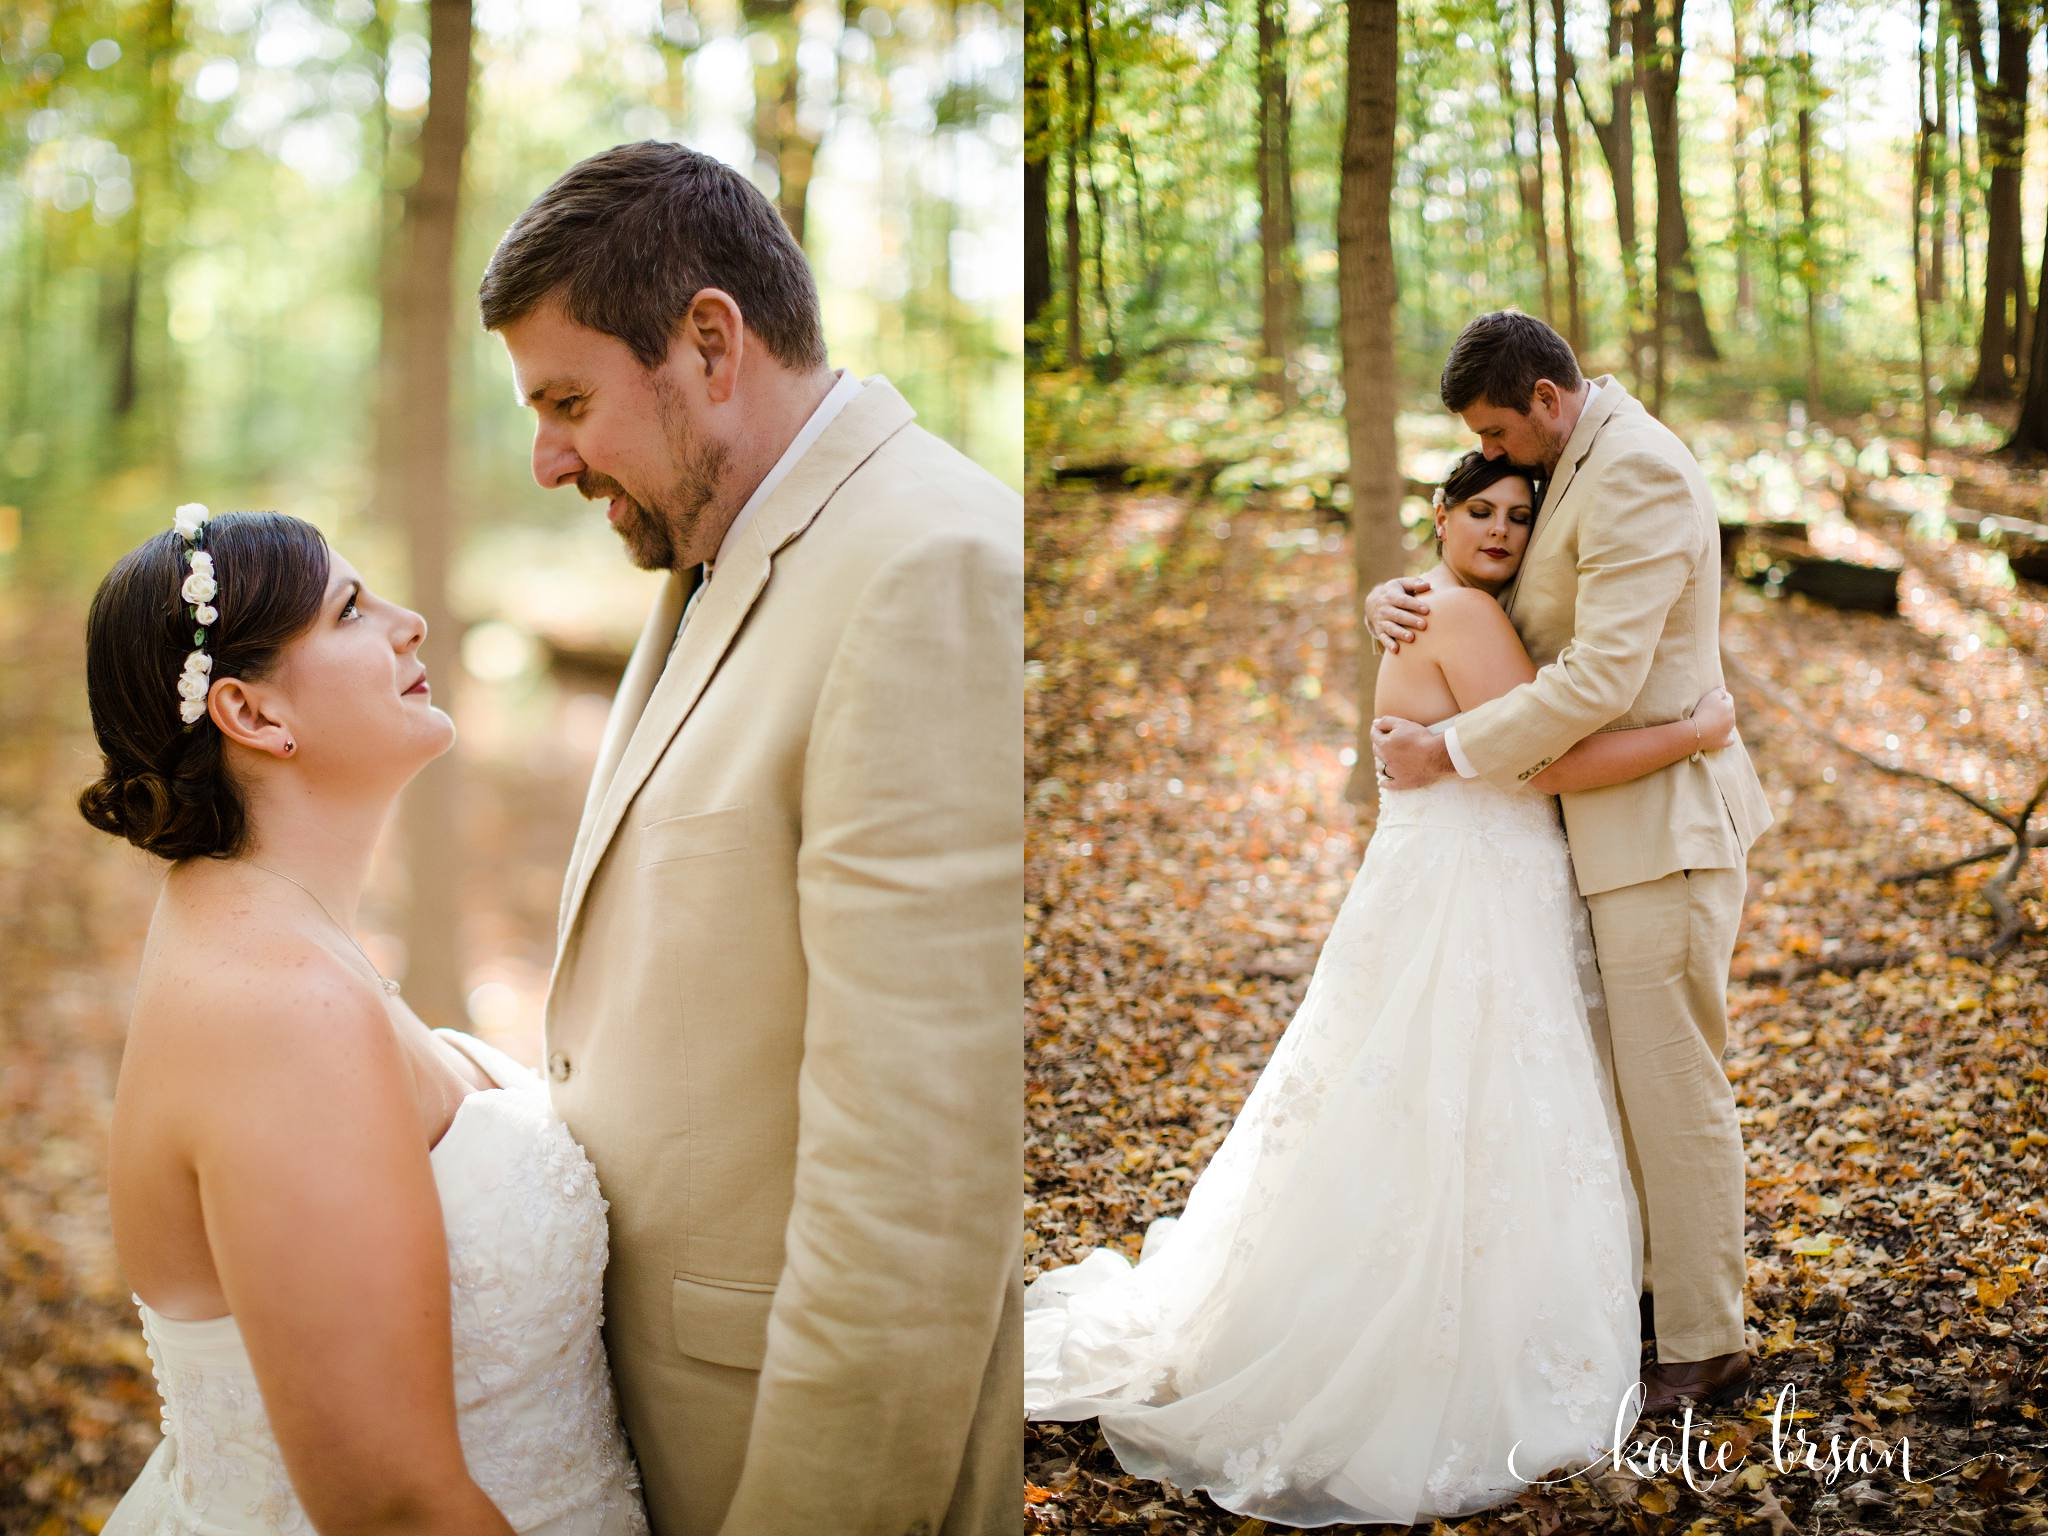 DownersGrove_BackyardWedding_GilbertsPark_1064.jpg